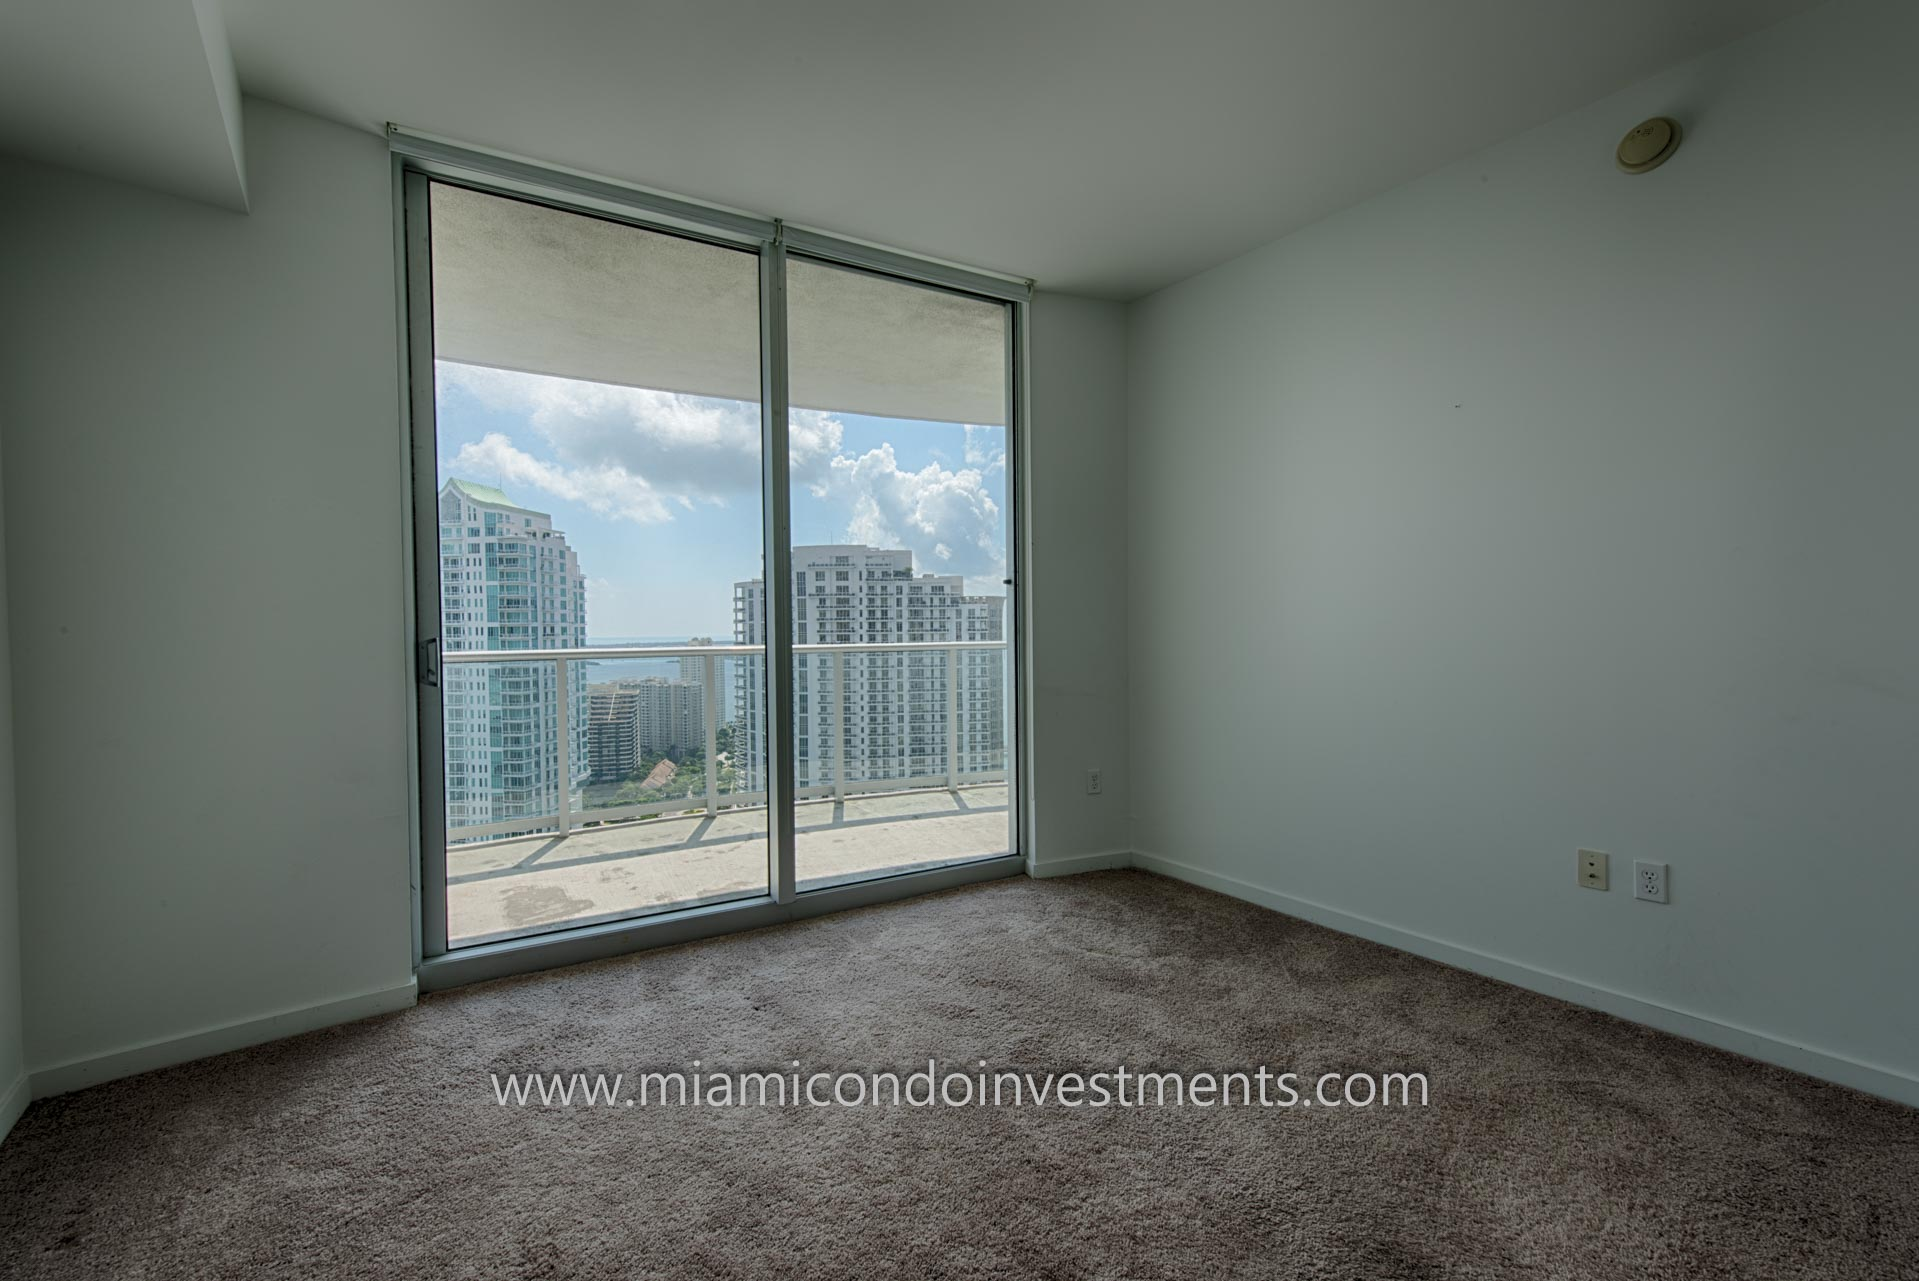 second bedroom with views of the Miami River, Brickell Key, Brickell, and Biscayne Bay